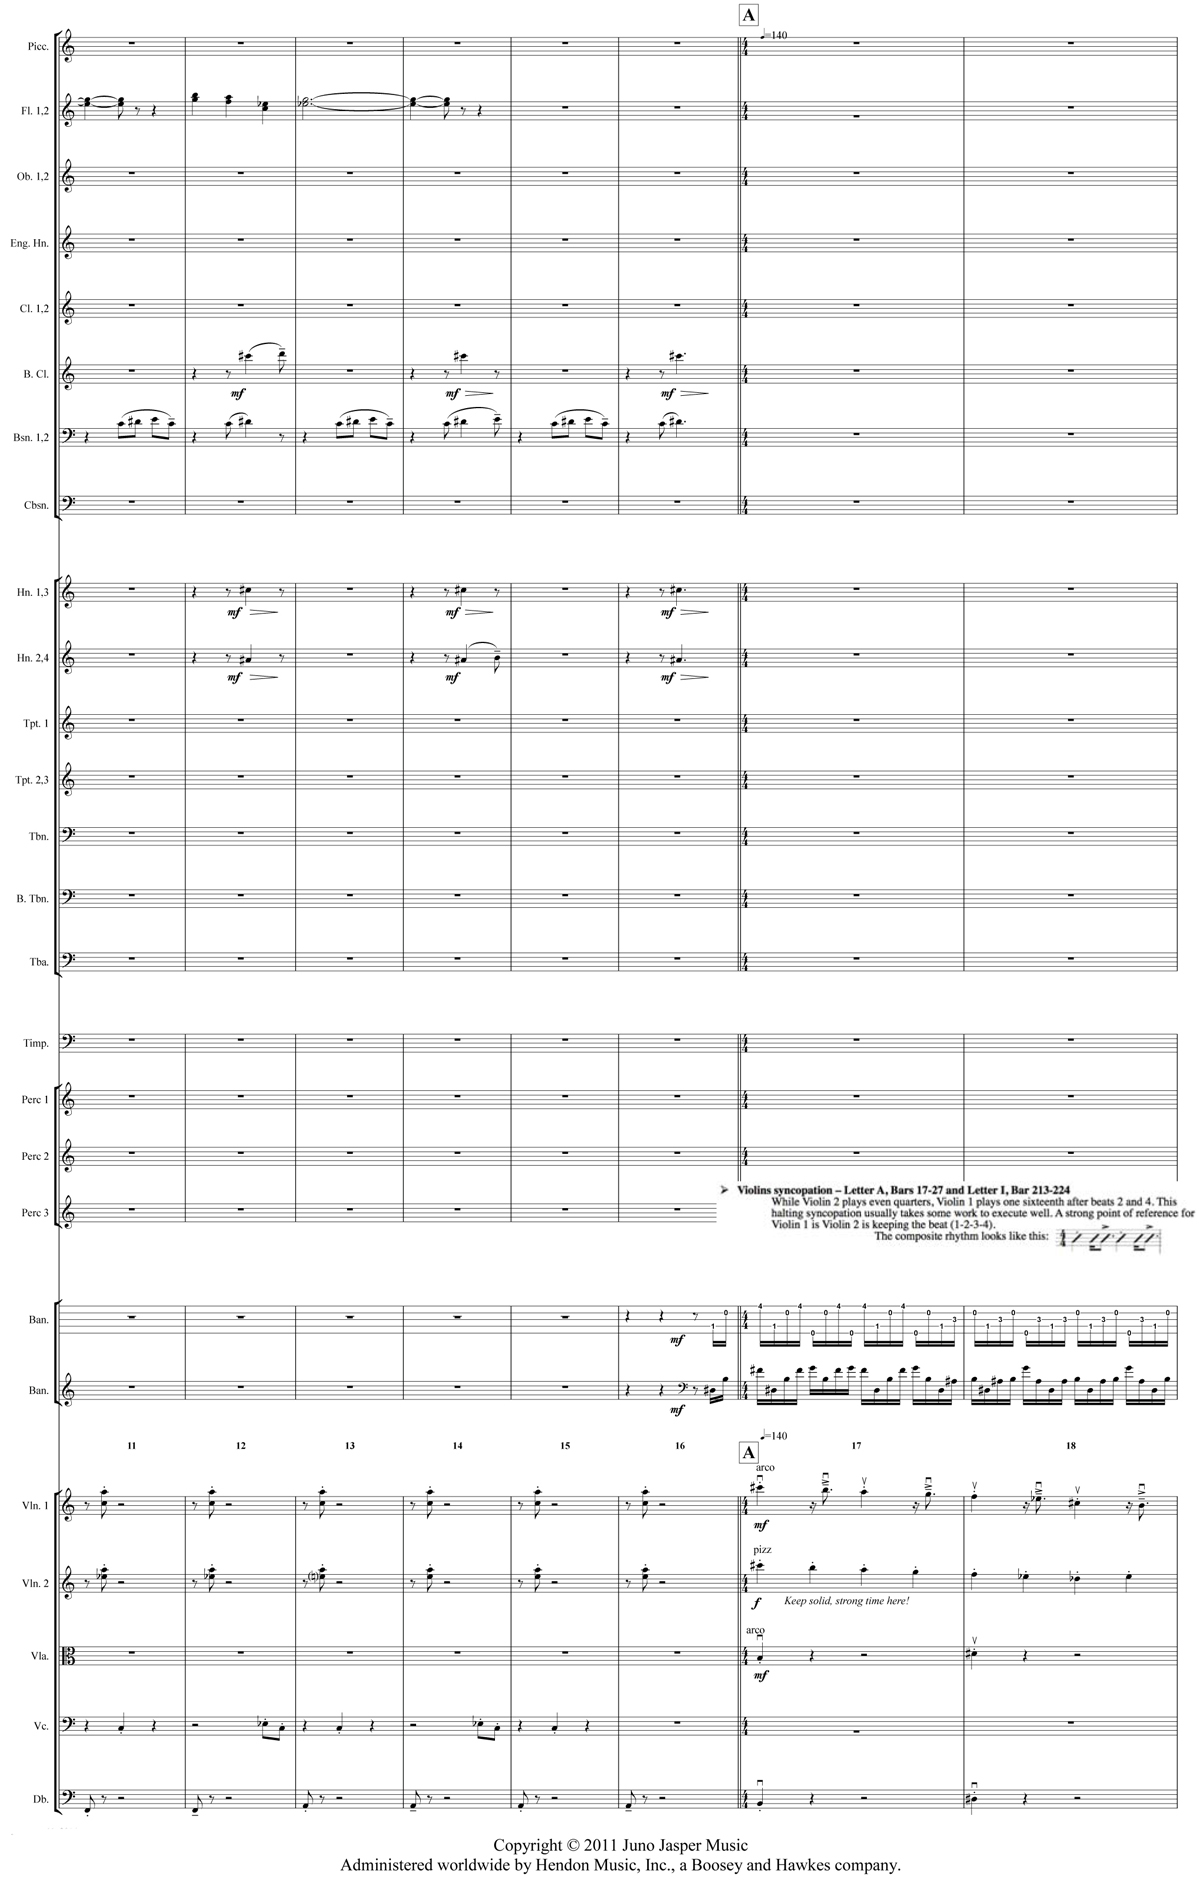 Excerpt from the full orchestral score of Béla Fleck's The Imposter